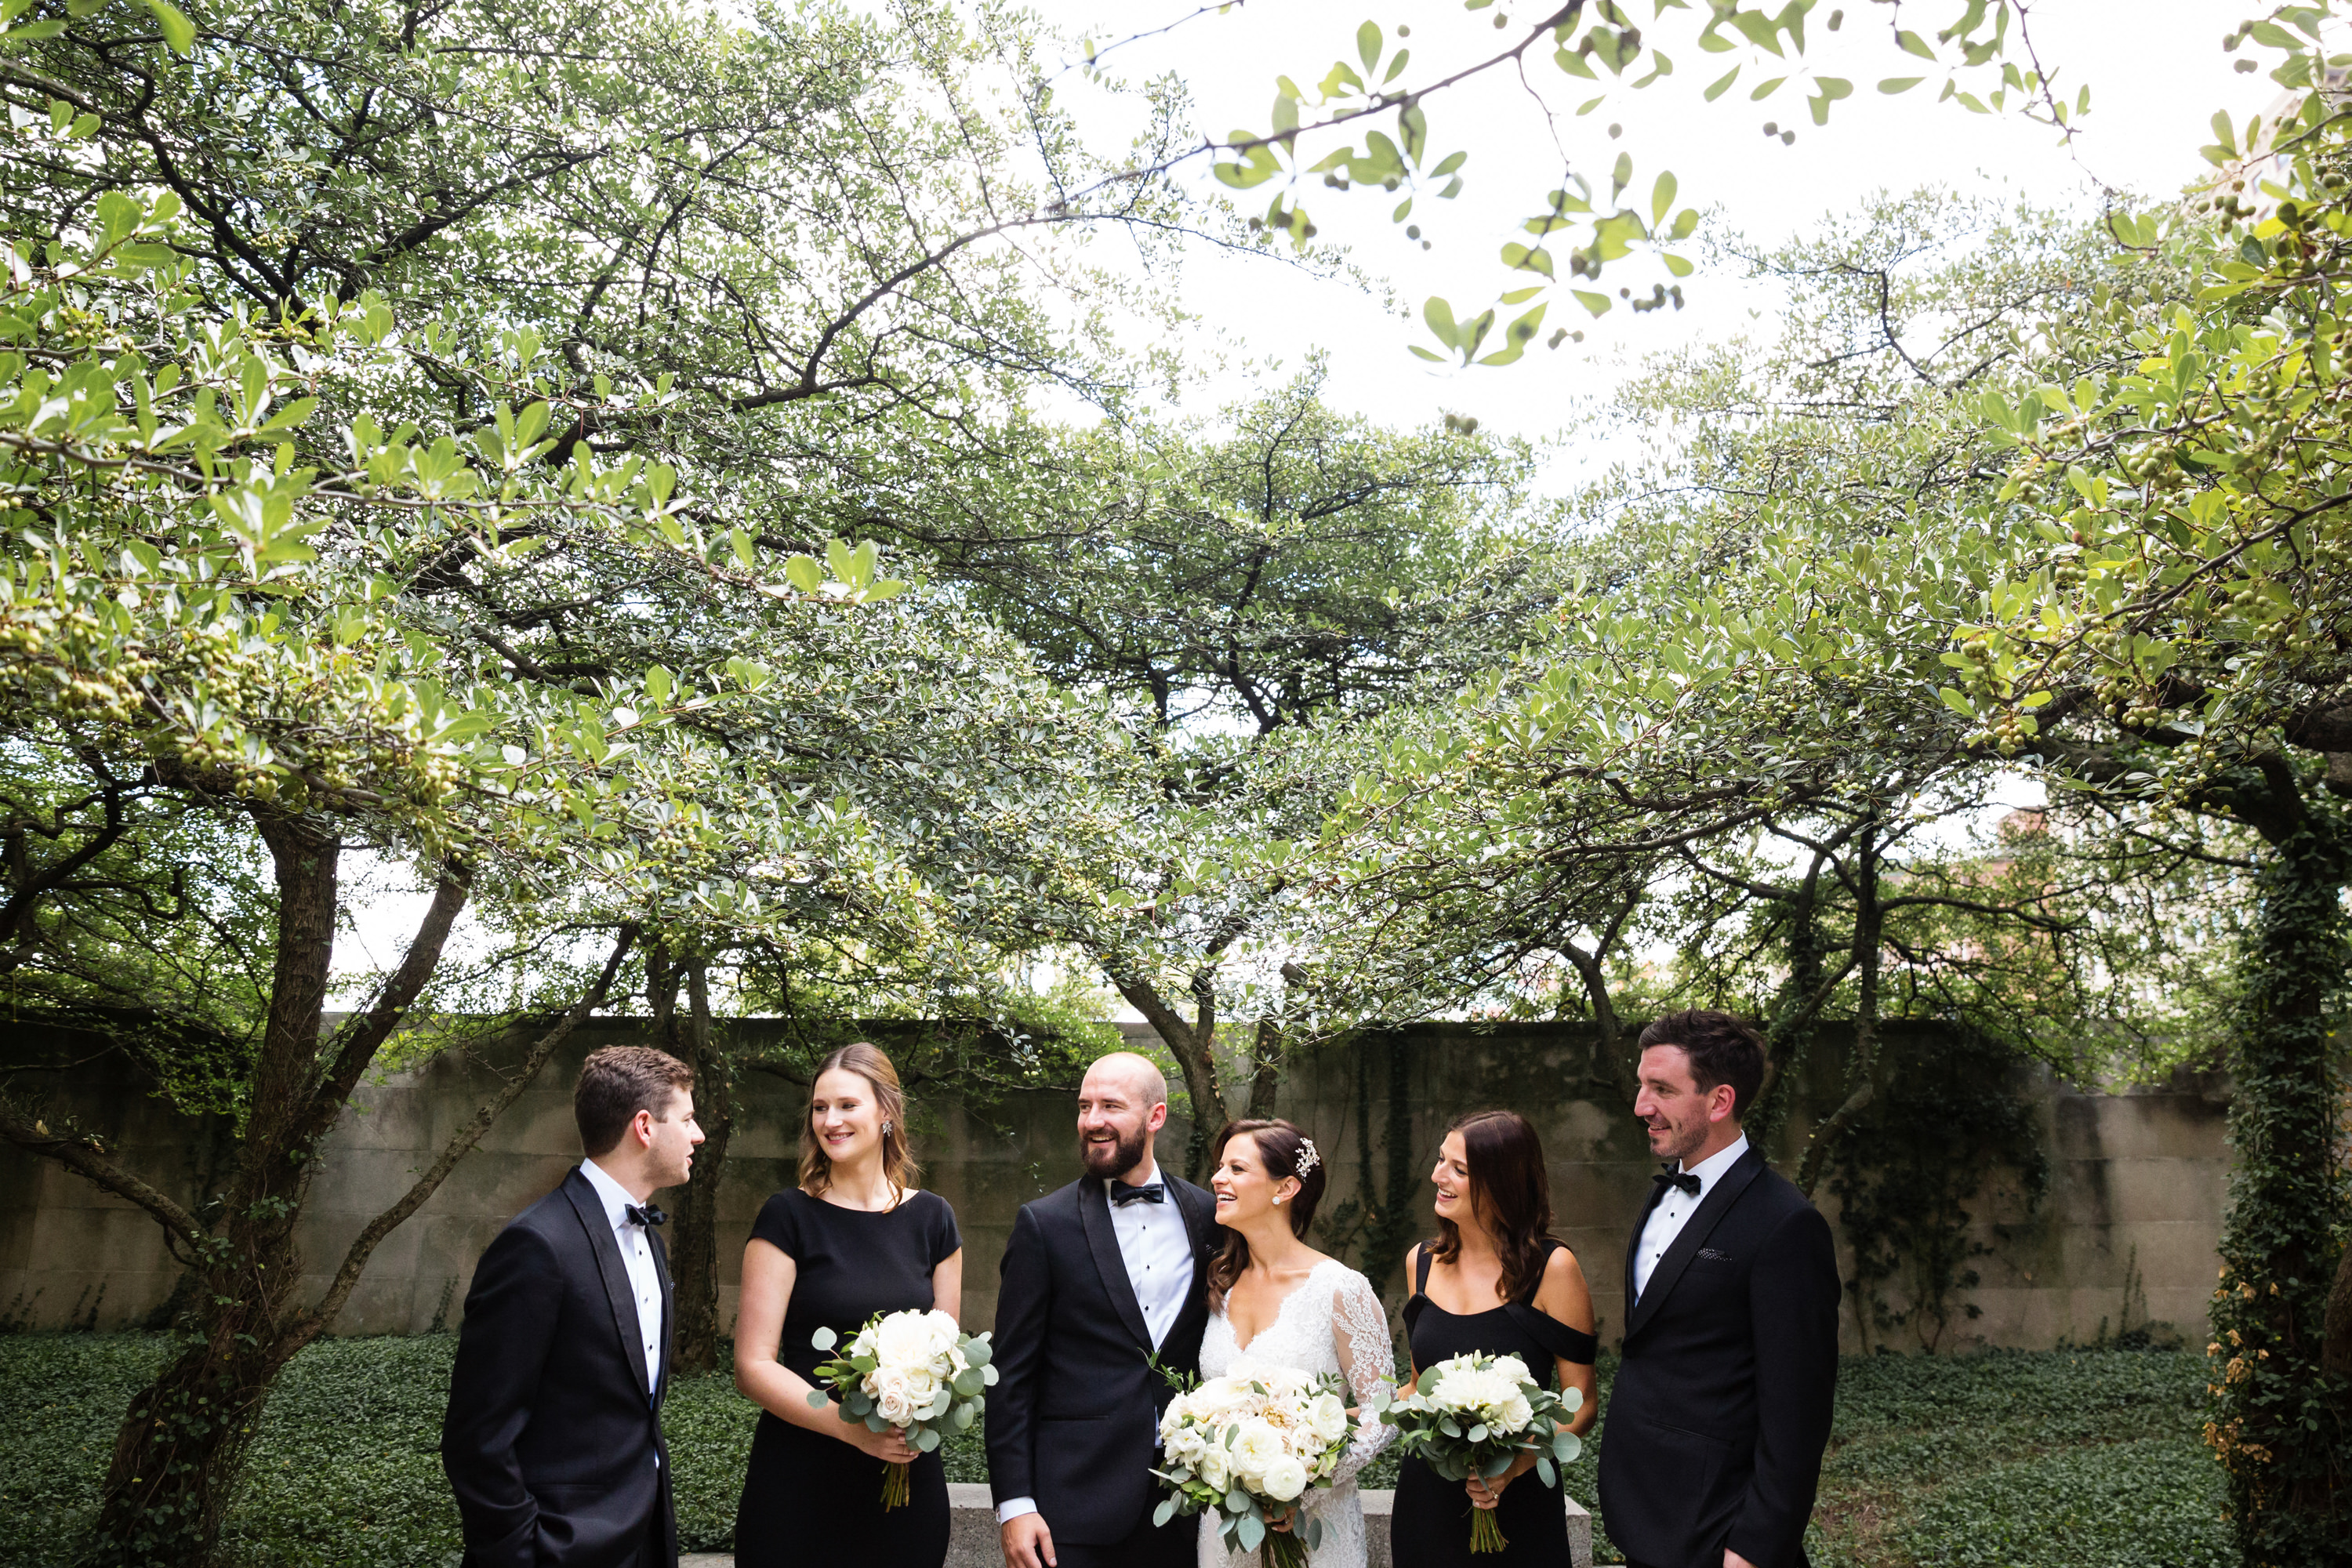 rachael_schirano_photography_wedding-14